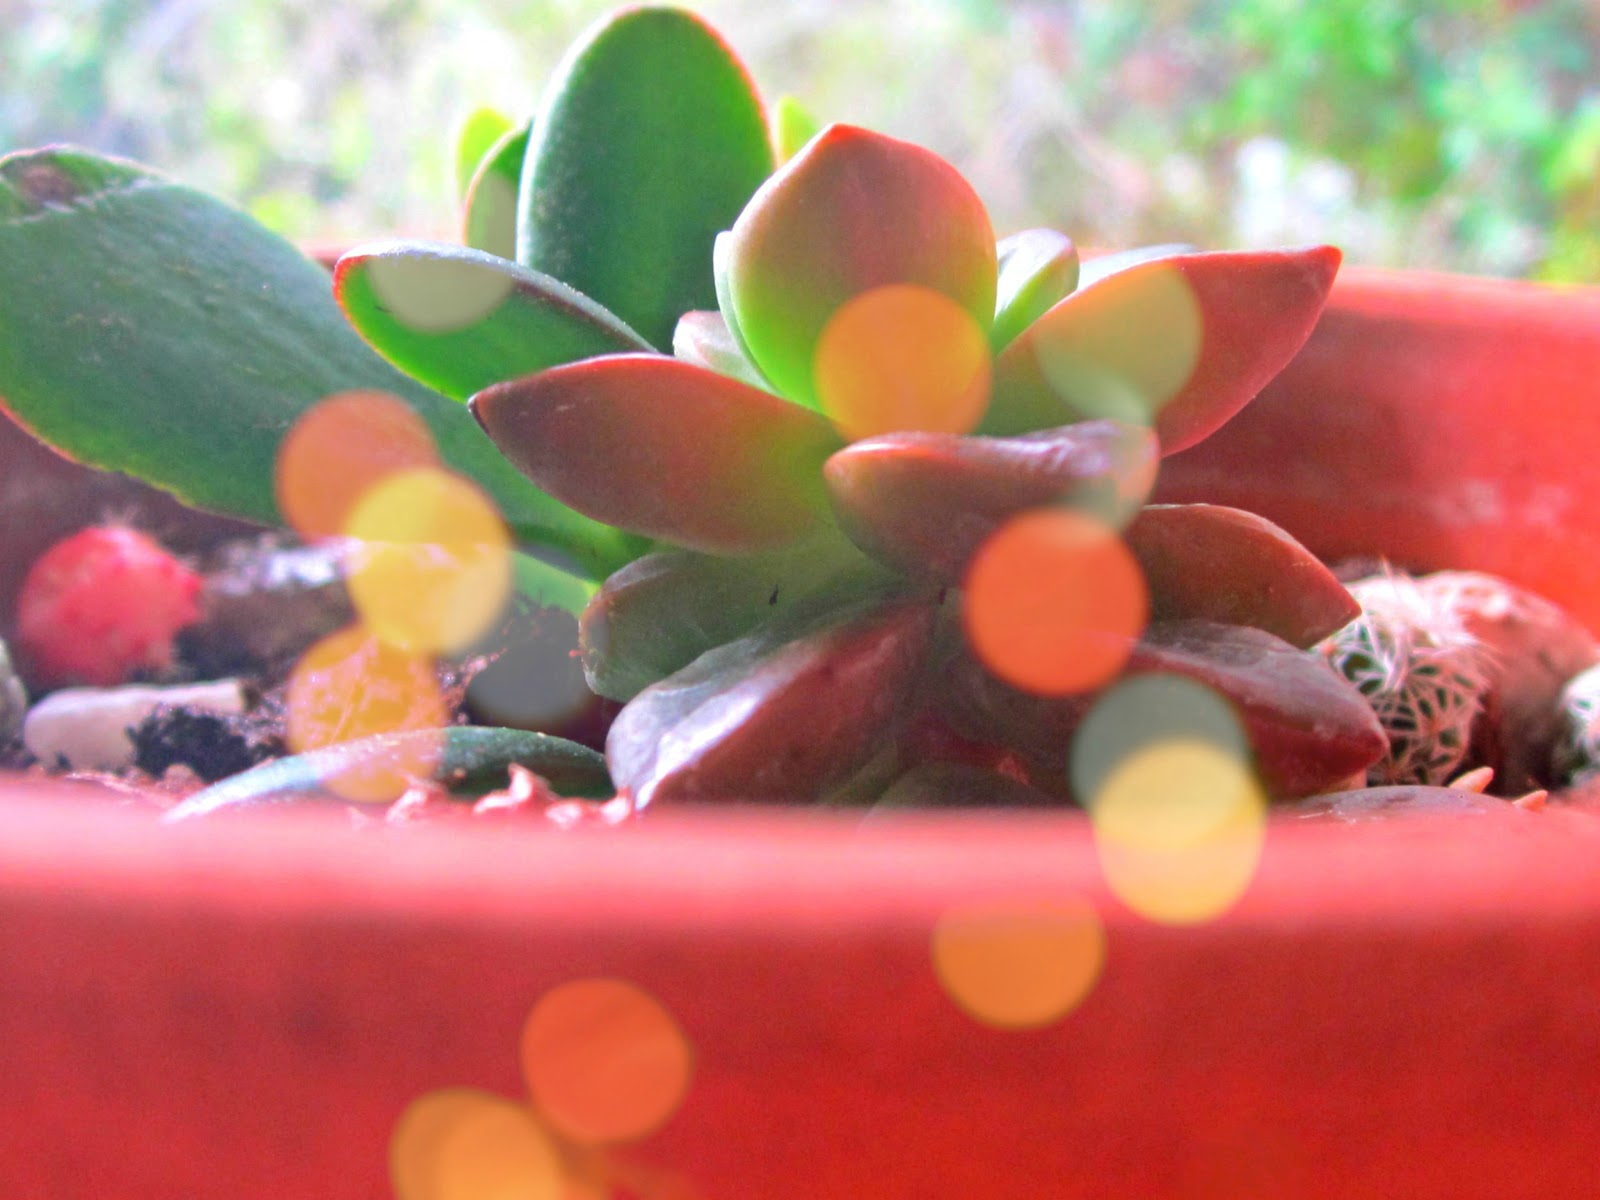 Plant Life With Bokeh Lights and Slow Living style